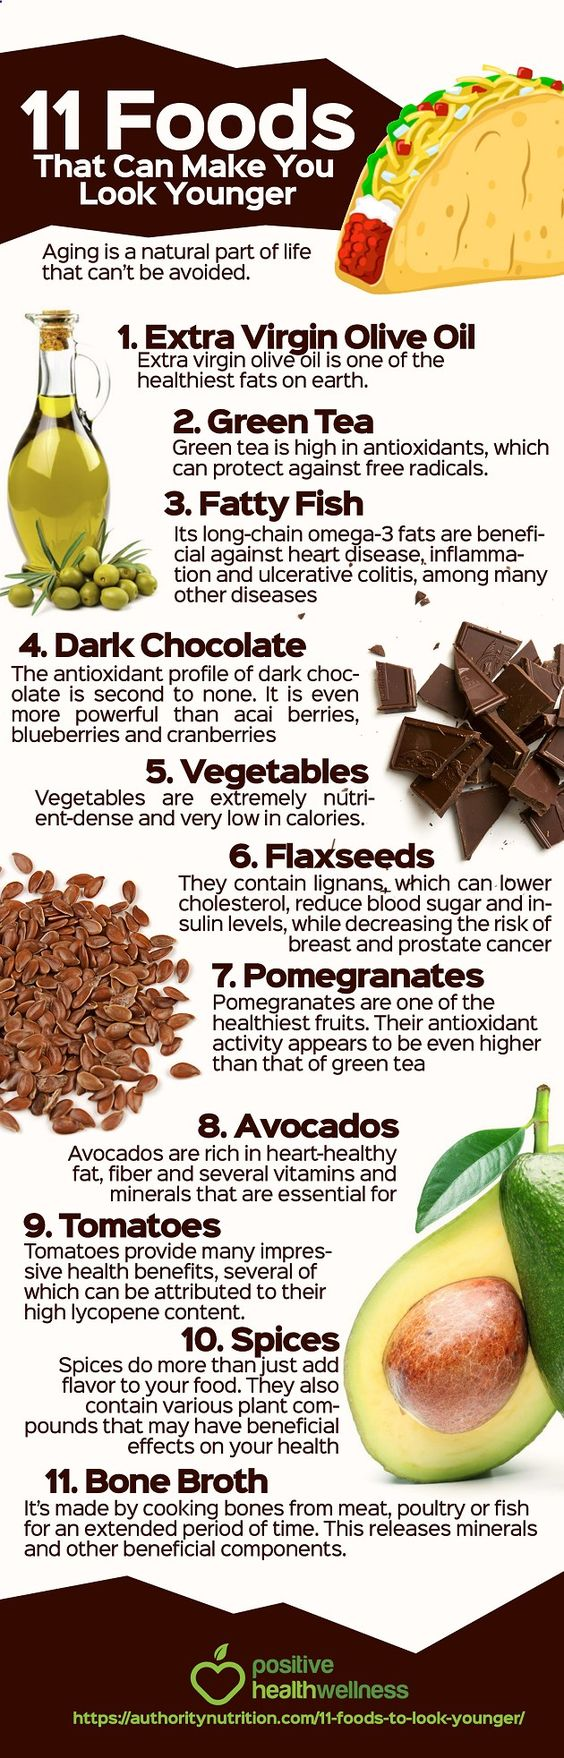 Foods that can make you look younger